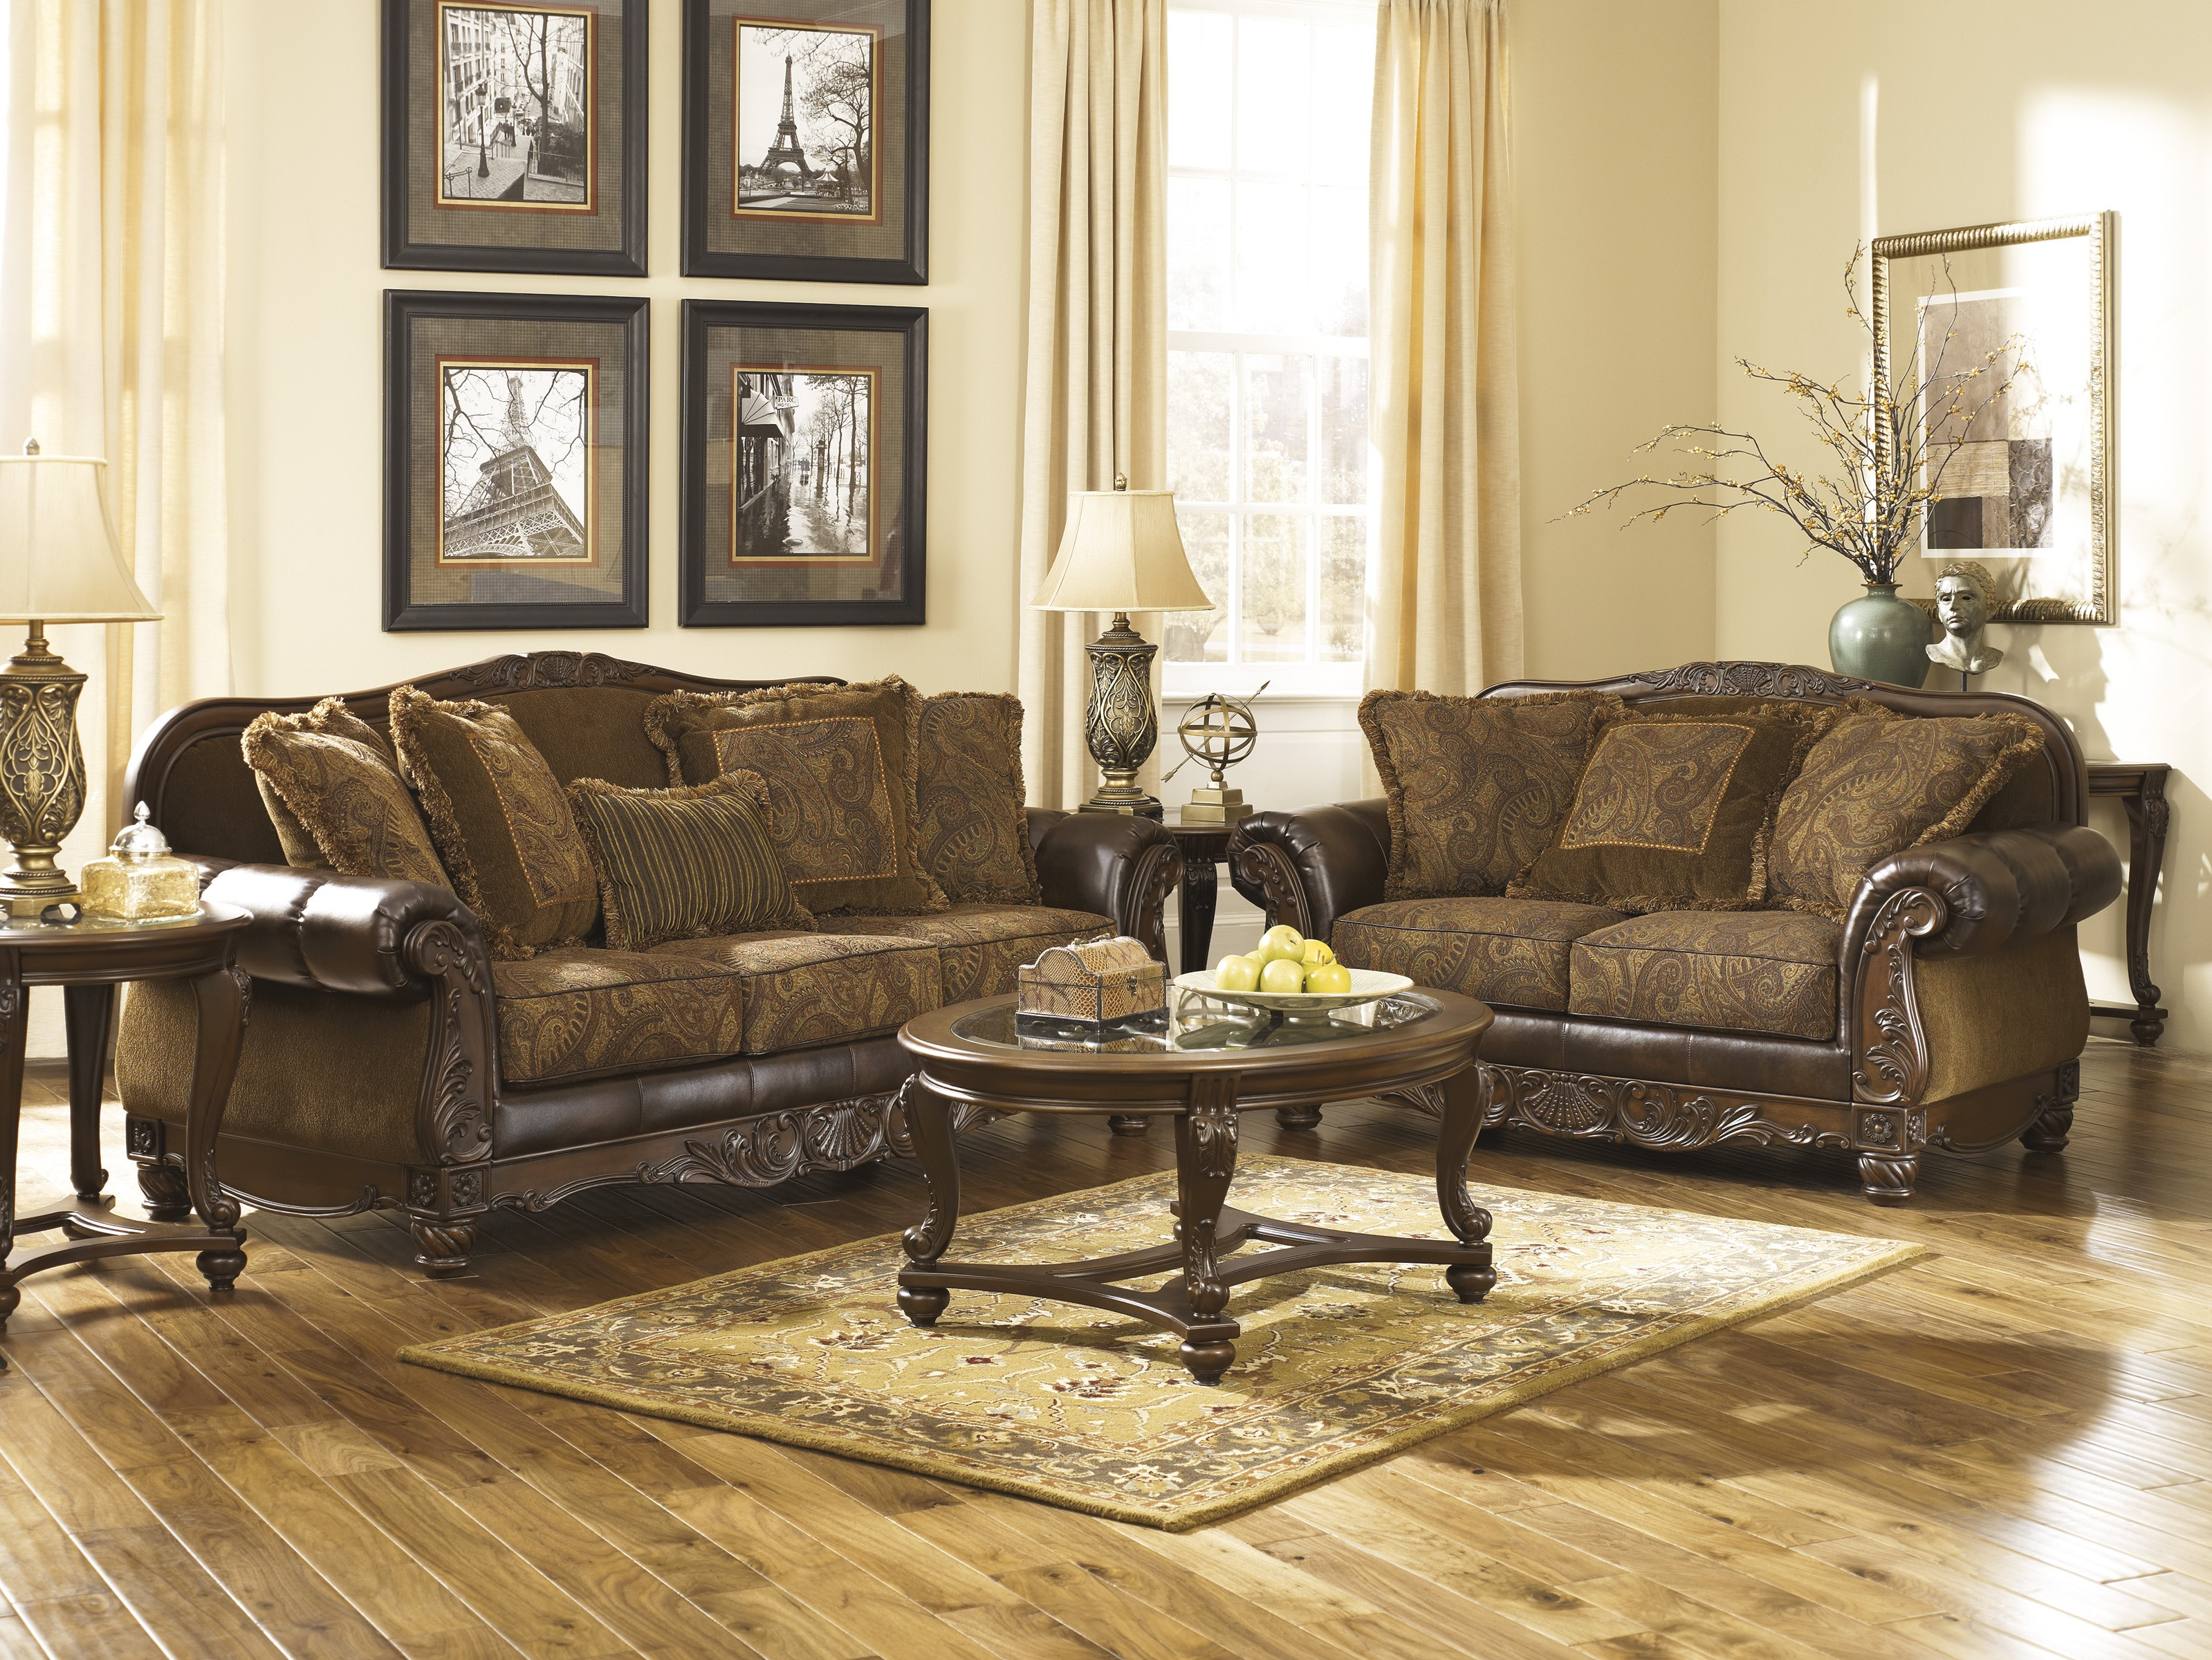 Living Room Design Comfy Ashley Furniture Tucson For Home Furniture